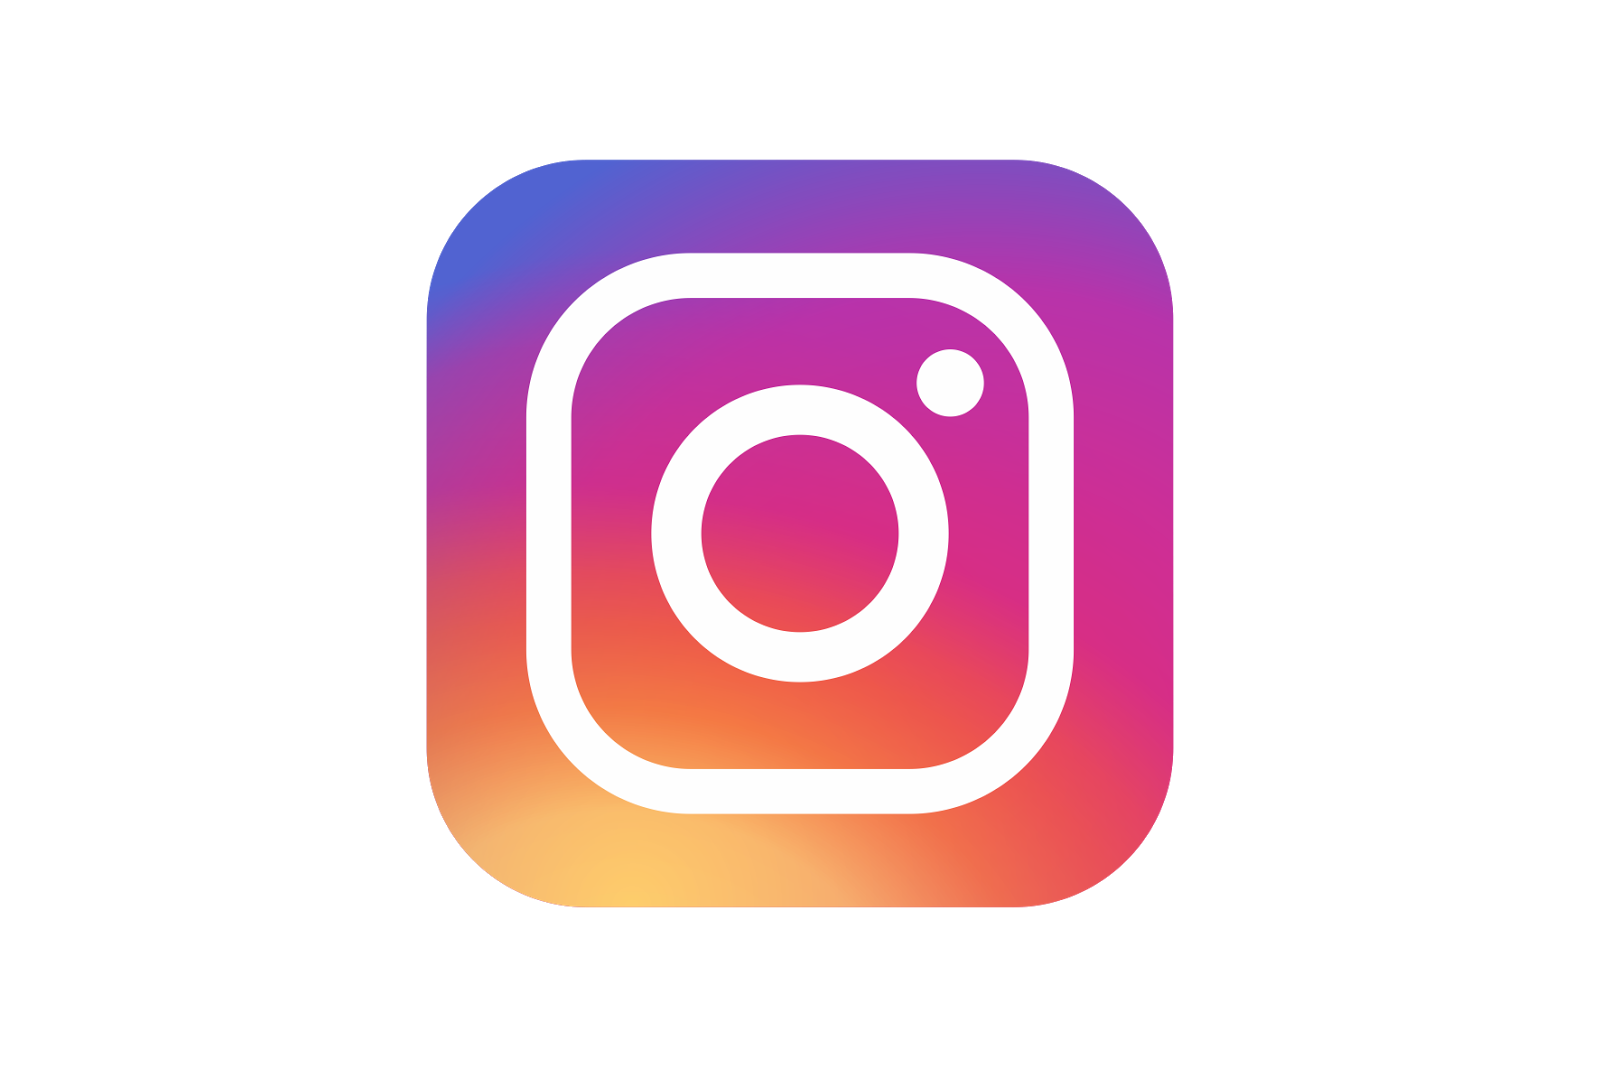 Instagram clipart. New logo photos transparentpng